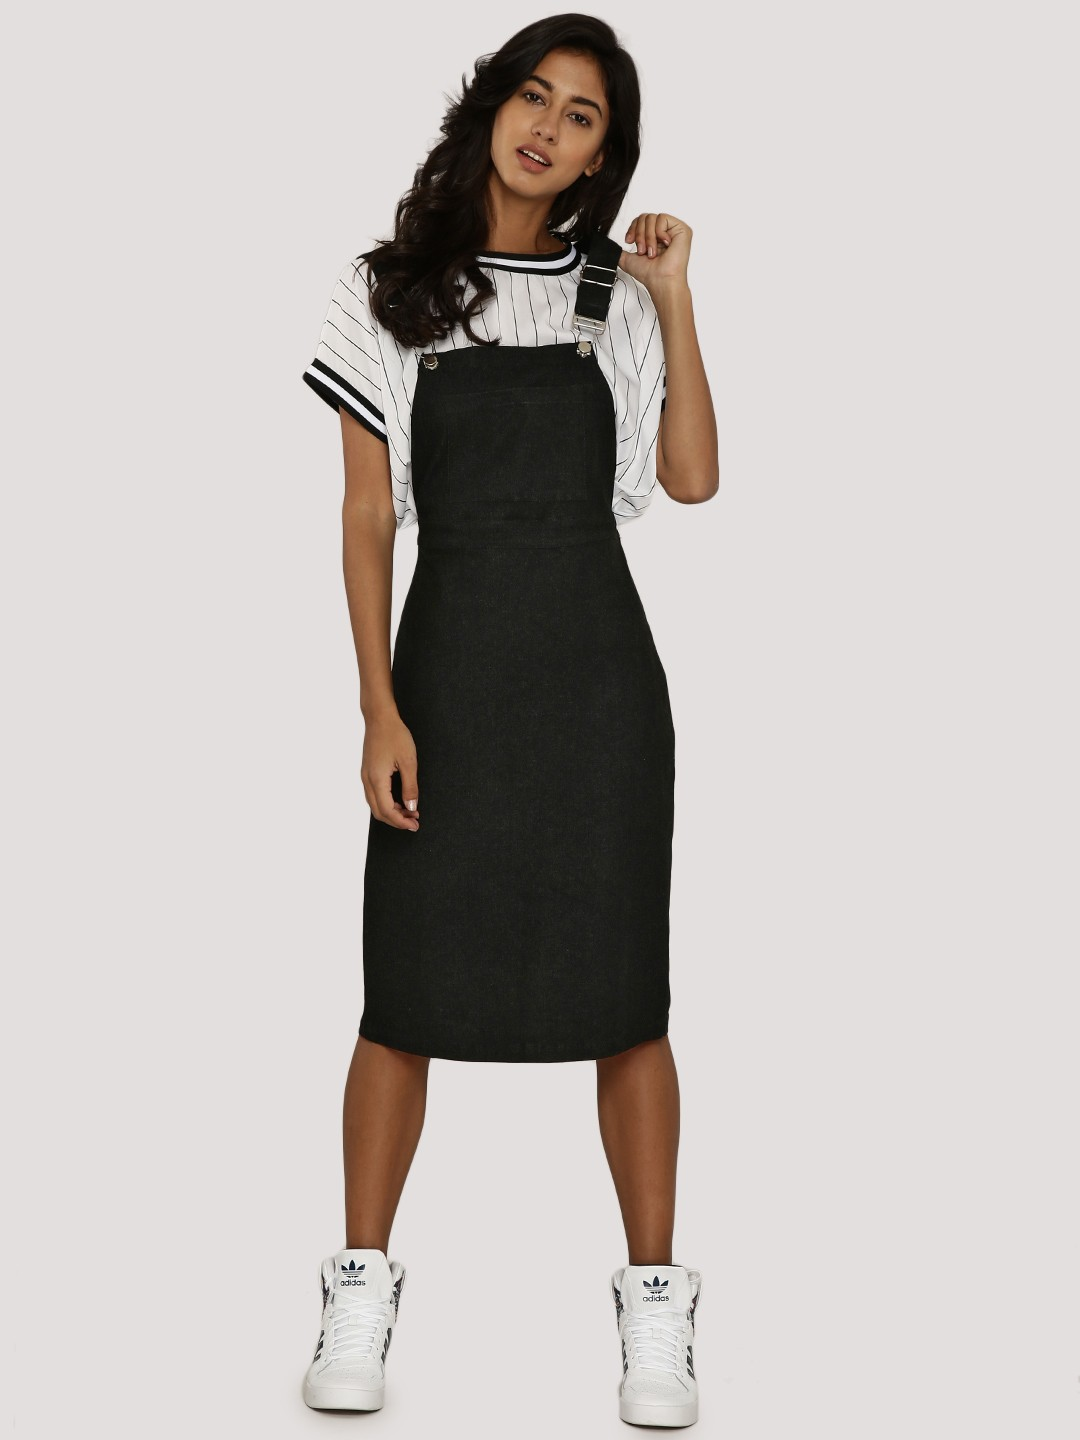 Black Denim Skinny Dungarees. In order to add this product to your outfit, please remove an item. Find my nearest PRIMARK. Show all in Jeans Dresses Formal Wear Hats, Gloves & Scarves Jeans Jewellery Knitwear Lingerie / Underwear.